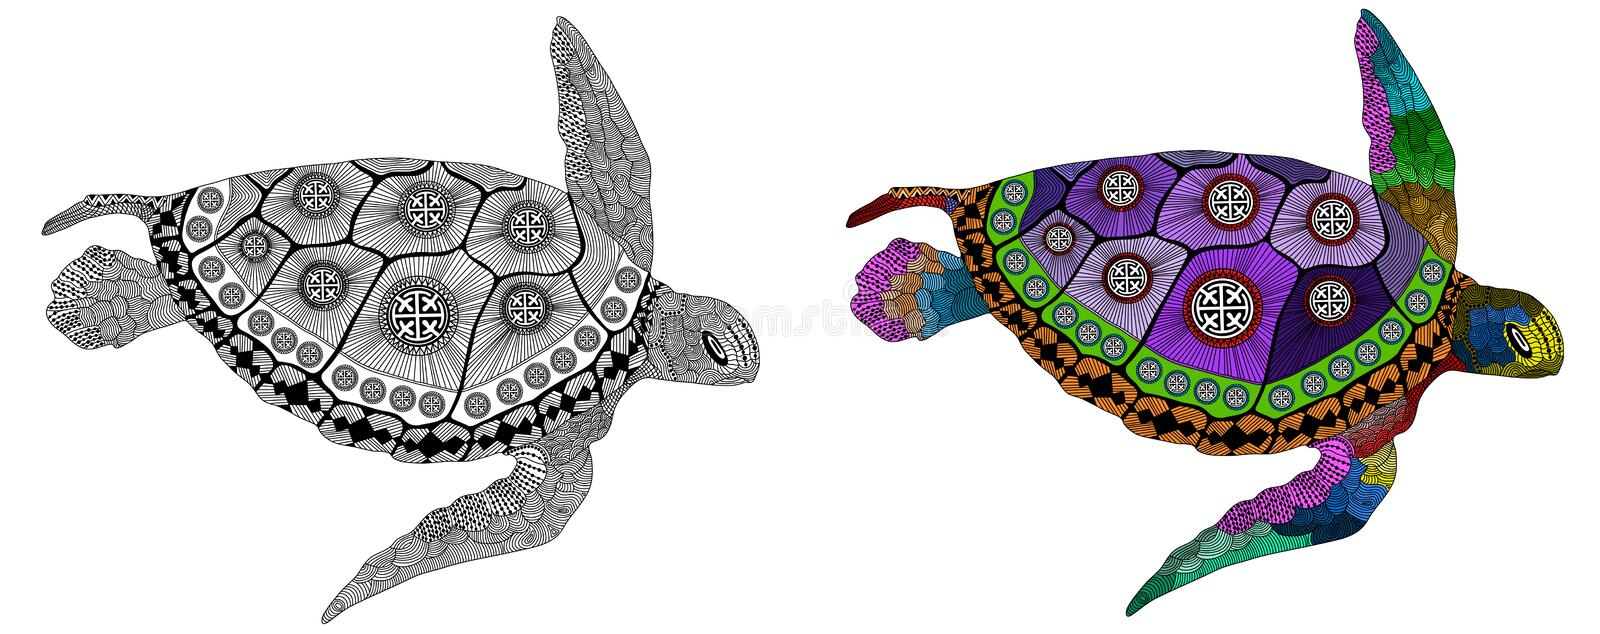 Zentangle Stylized Color And Black Turtle Stock